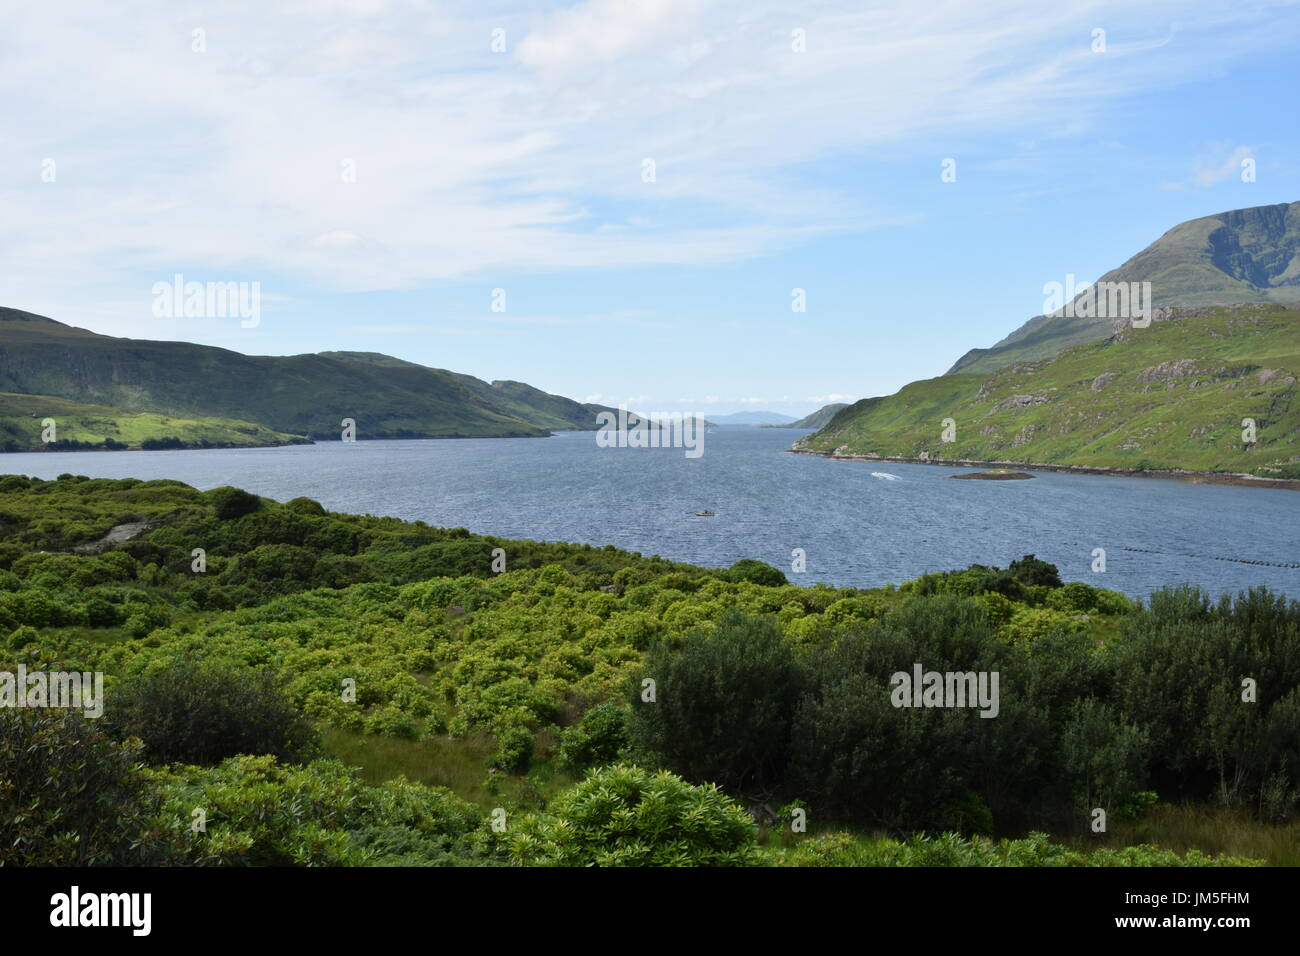 View of Killary Harbour from the road N59 in the County Galway, Ireland - Stock Image